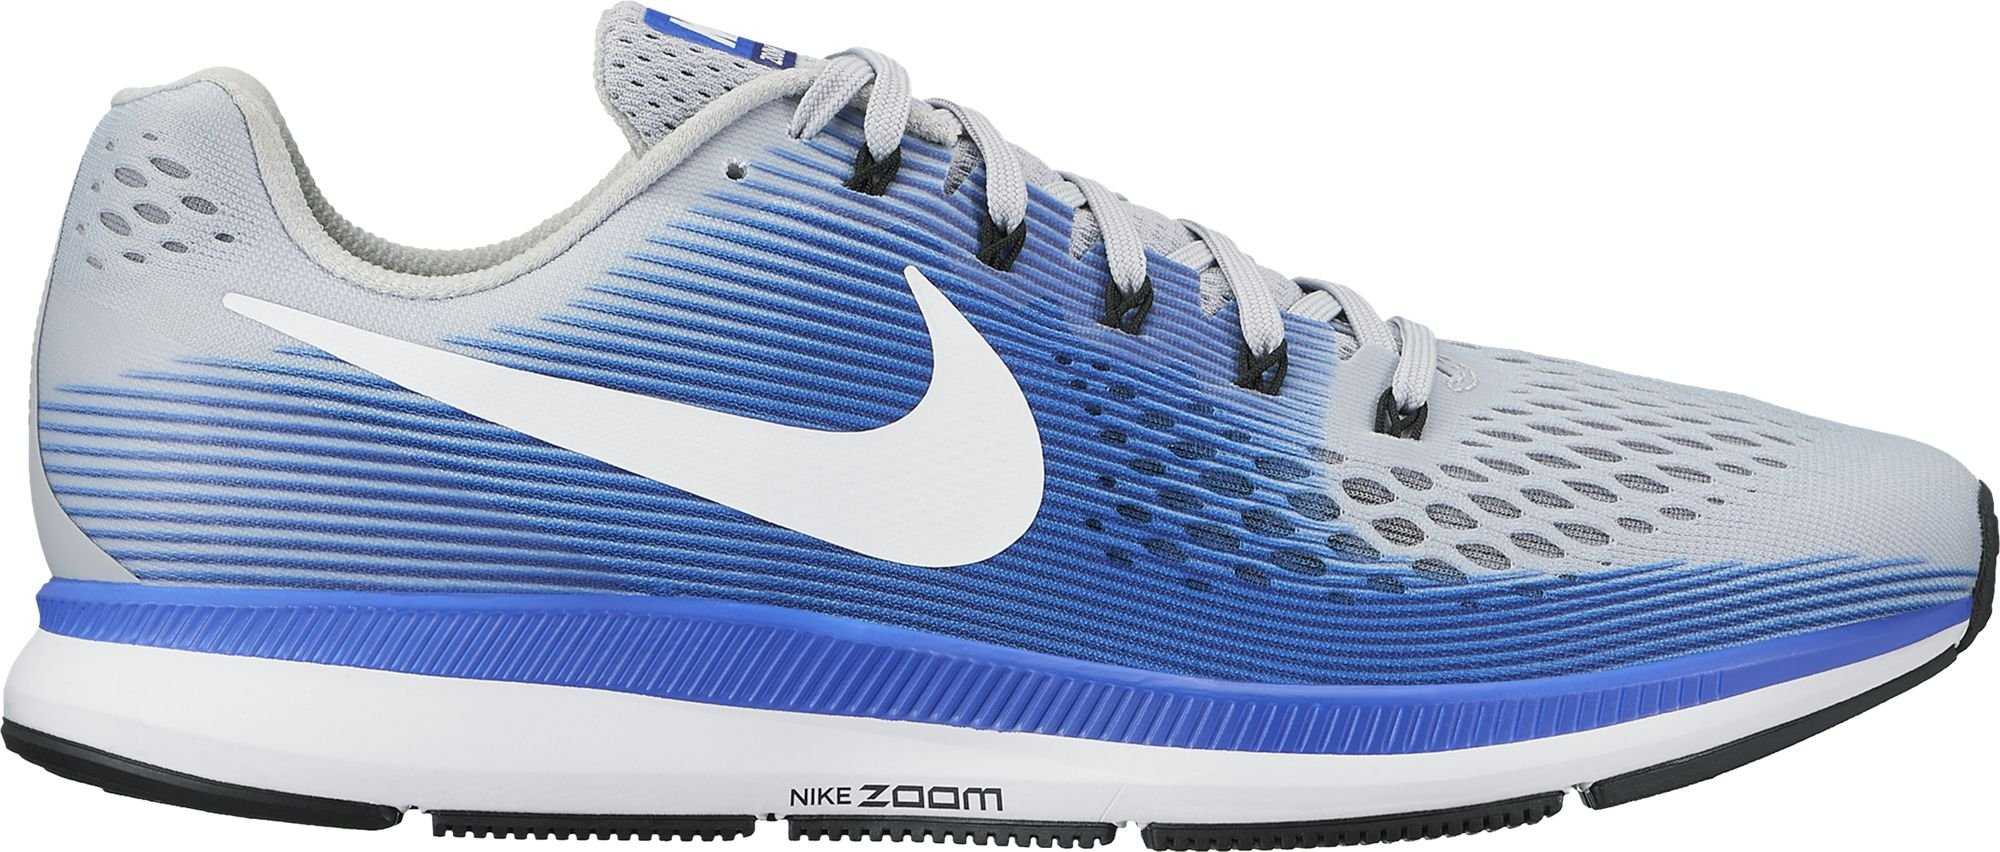 feb22cafc171b Nike Men's Air Zoom Pegasus 34 Running Shoe Wide (4E) Wolf Grey/White/Racer  Blue Size 13 Wide 4E